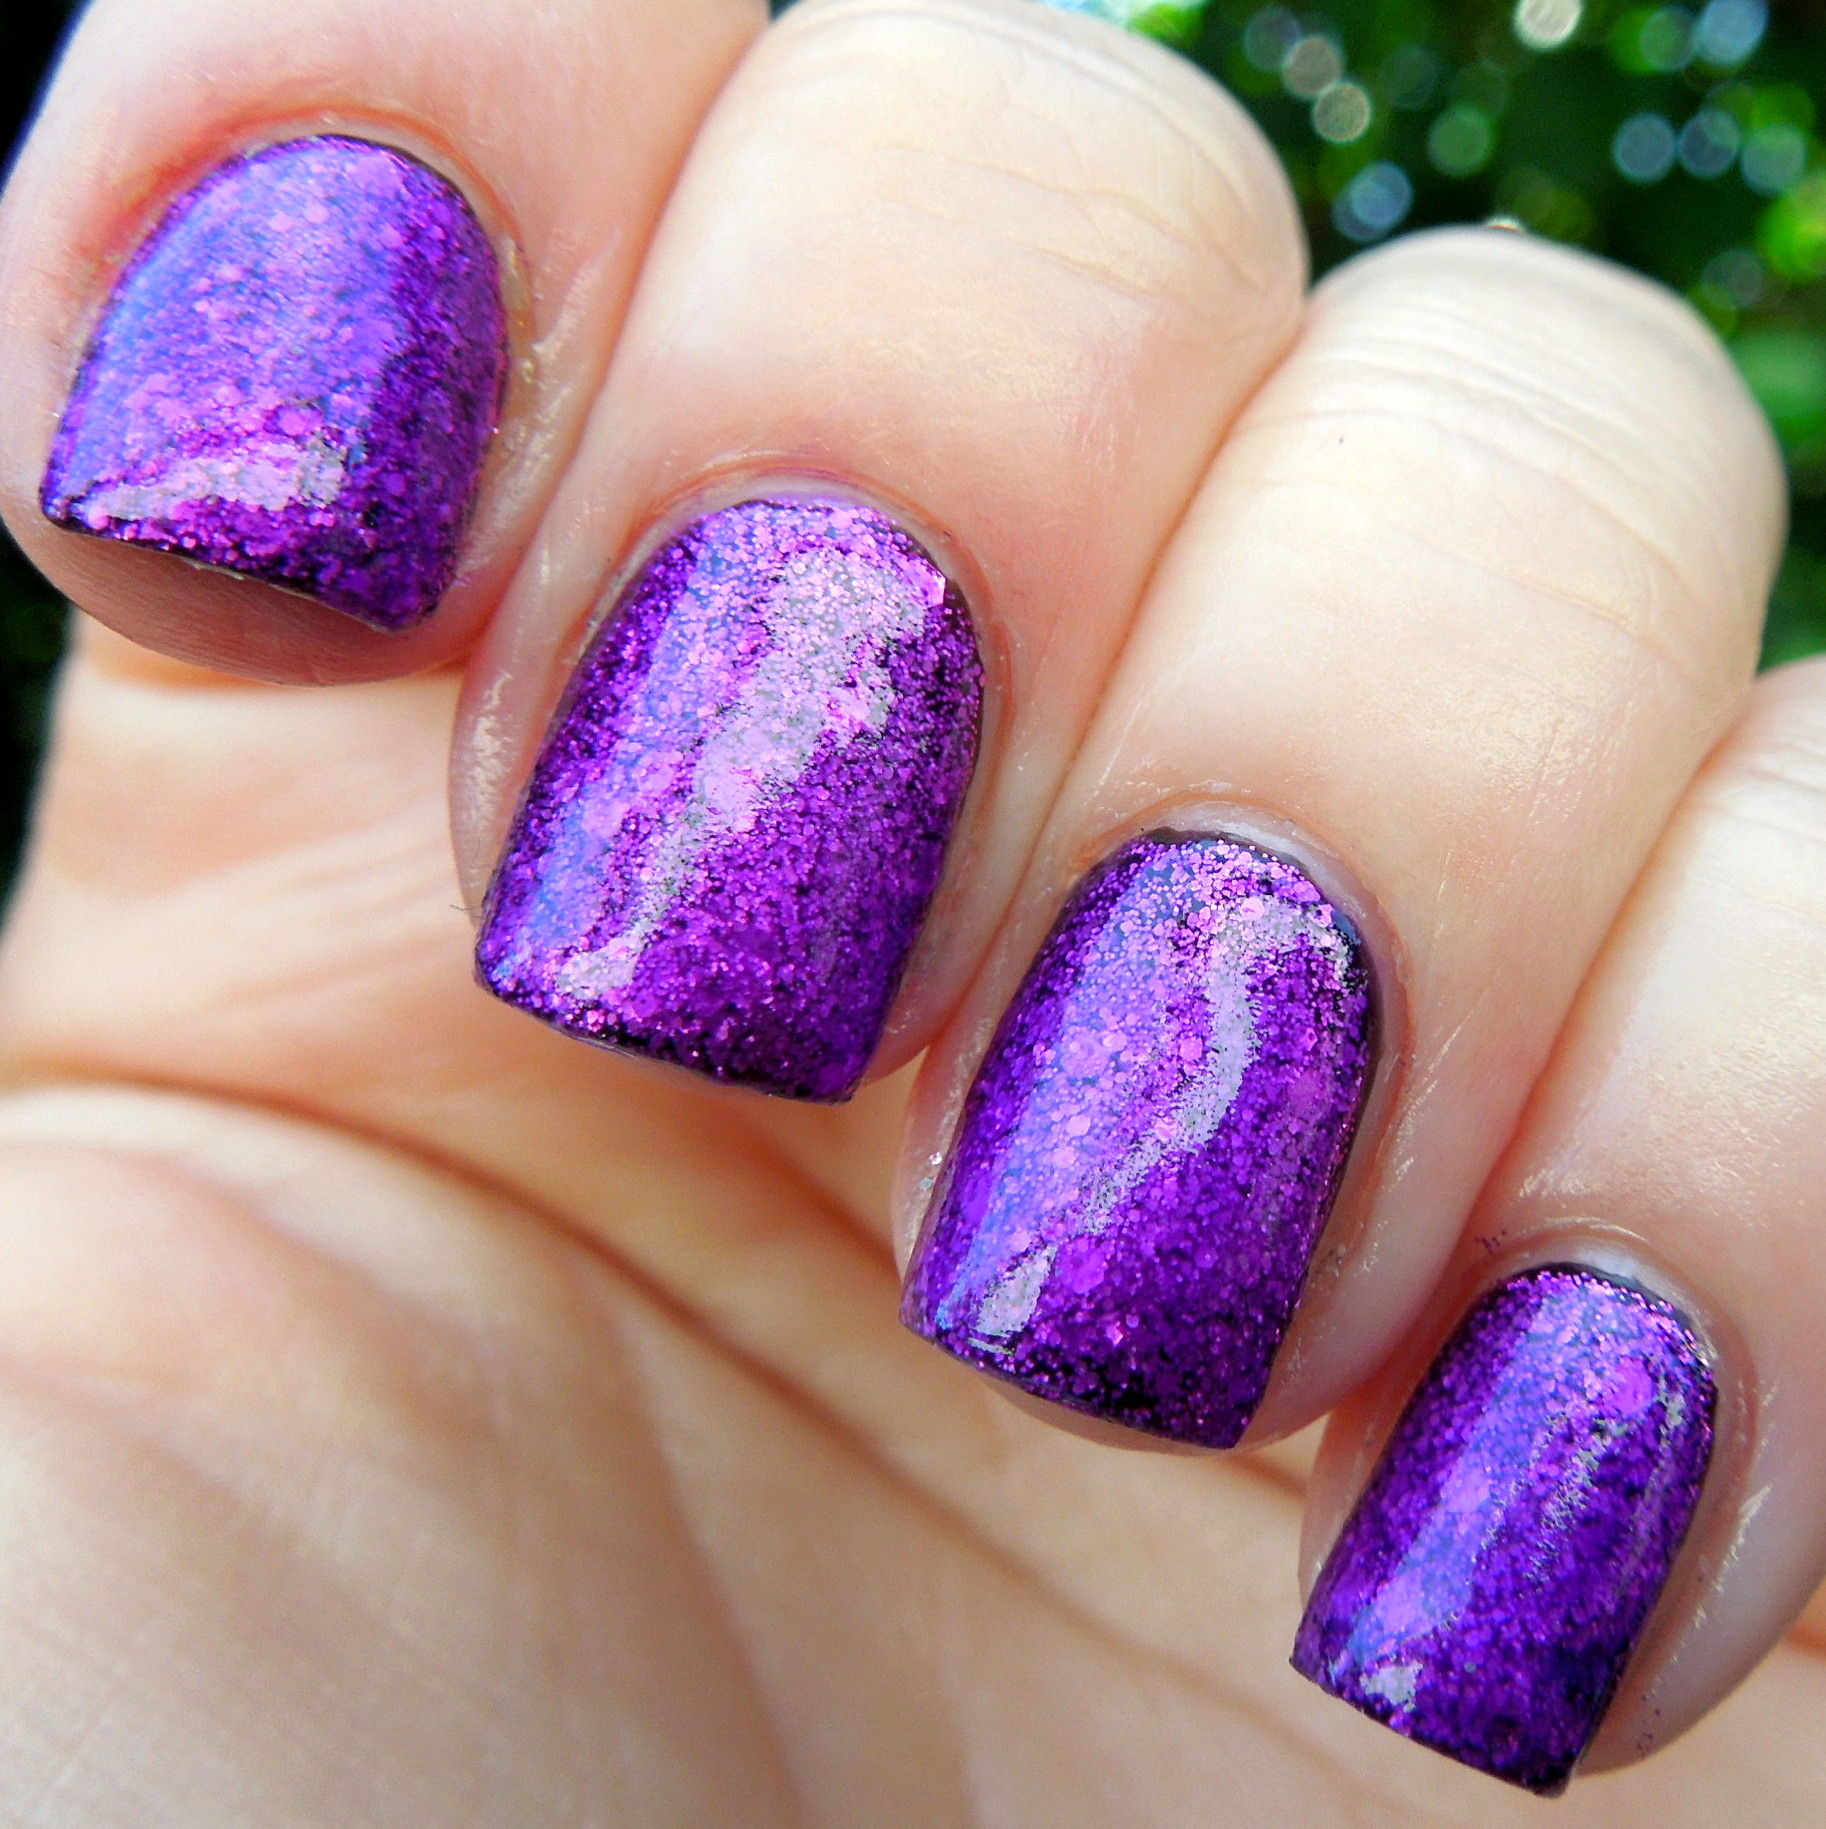 365 Days Of Nail Art March 2014: Bubbly, Creative Twinkle Over Liquid Vinyl....